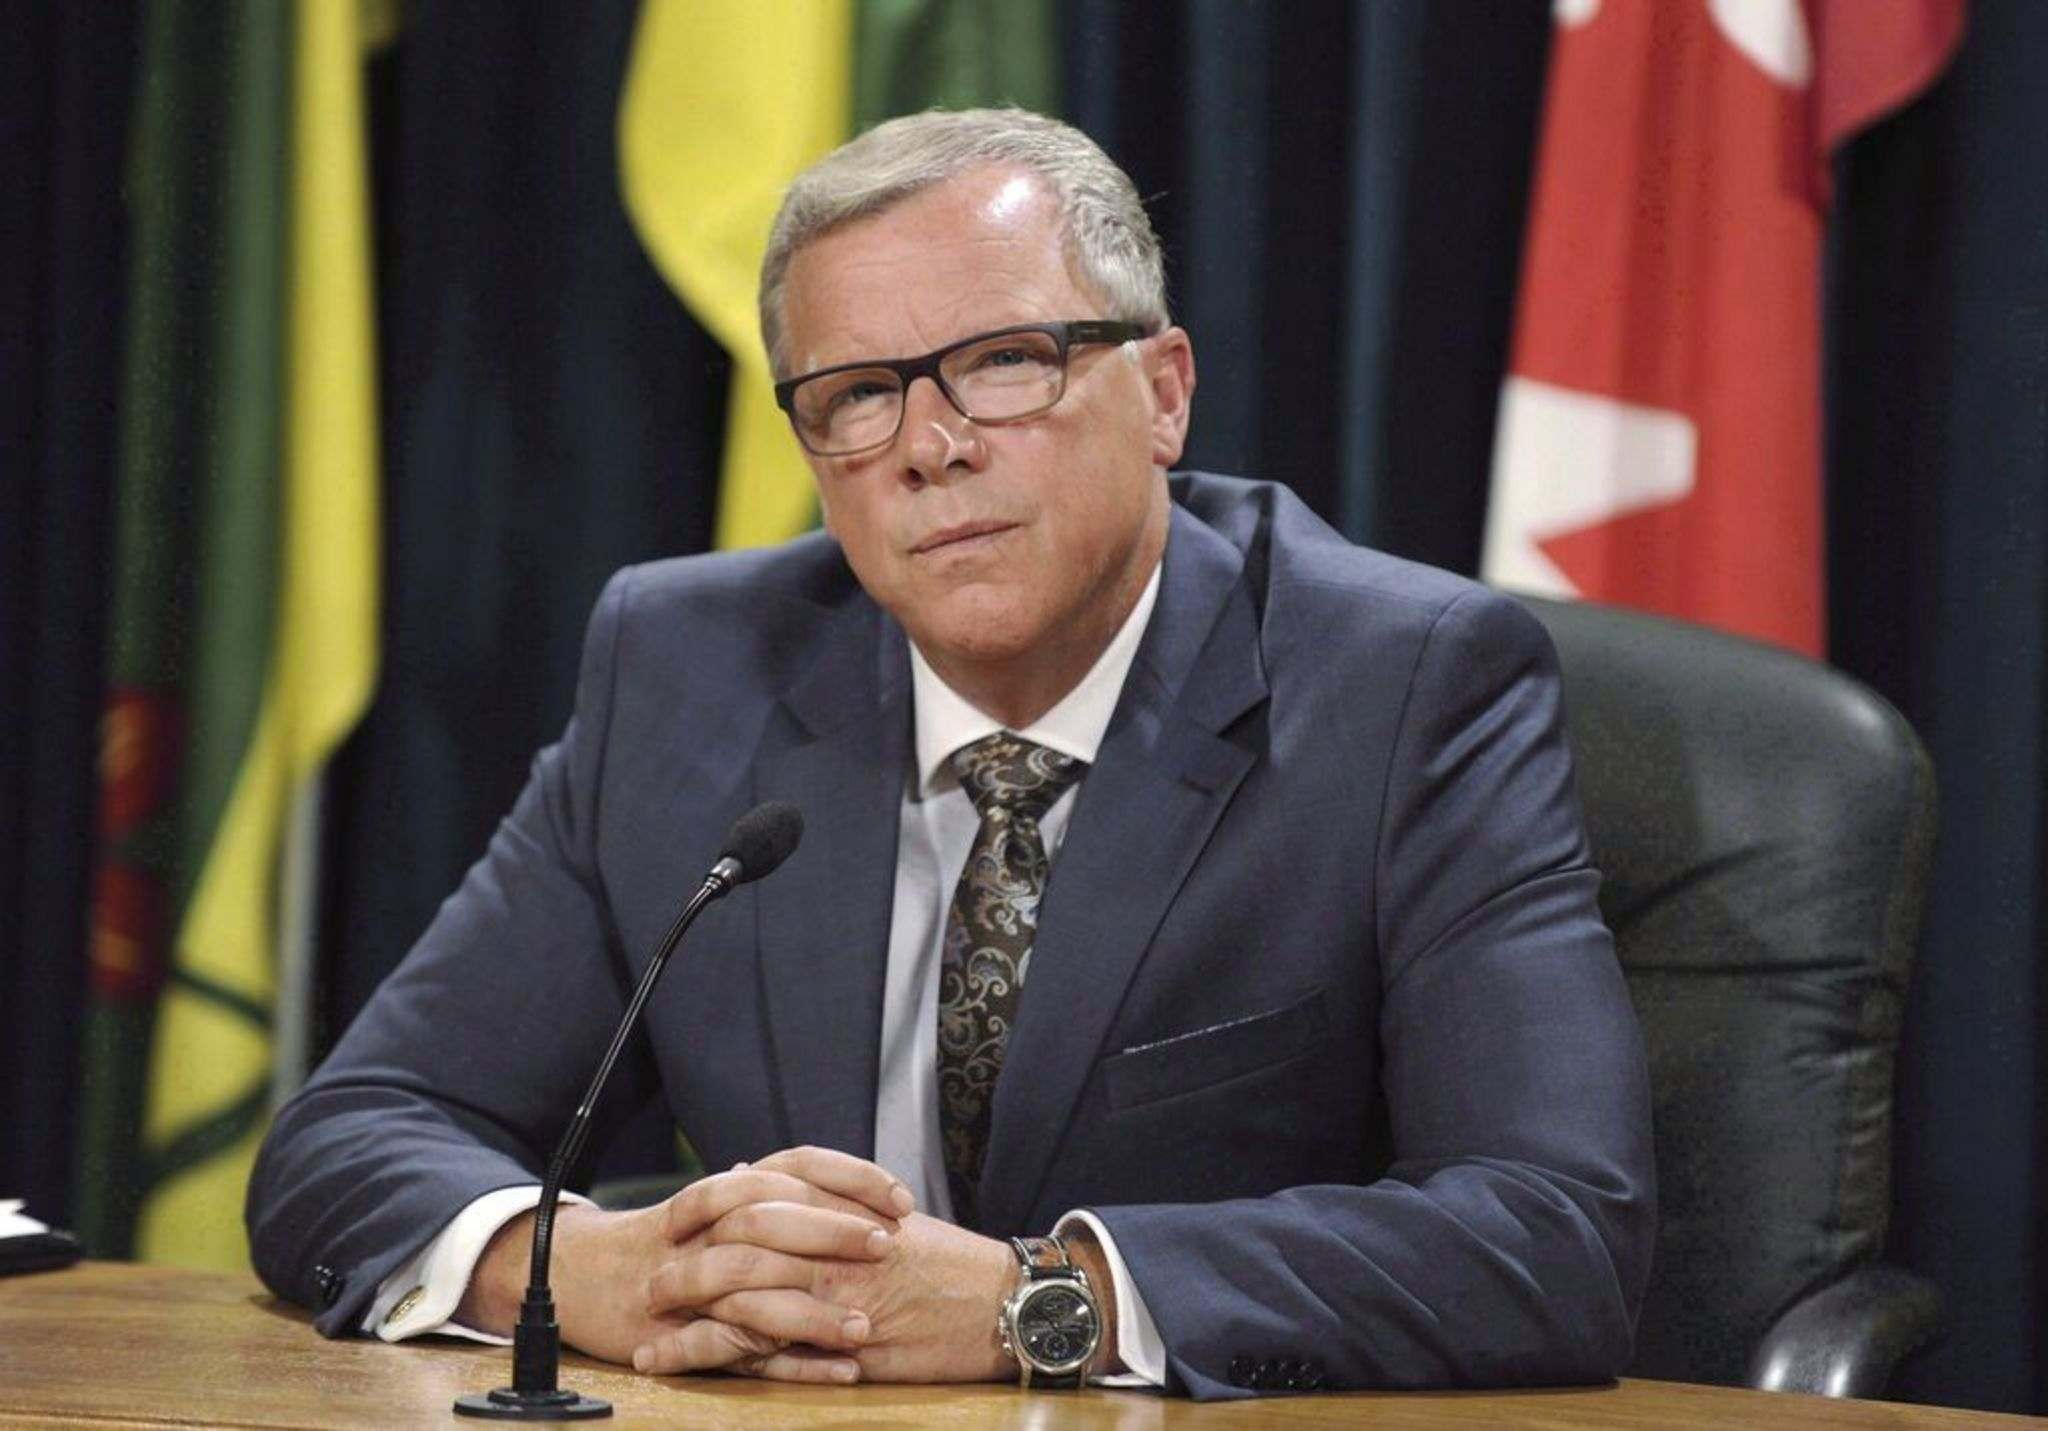 Former Saskatchewan Premier Brad Wall's consulting work and ties to a Calgary firm, which registered to lobby the province, undermine his actual or perceived impartiality and his ability to conduct his role as head of a probe into Manitoba Hydro say the NDP. THE CANADIAN PRESS/Mark Taylor</p>